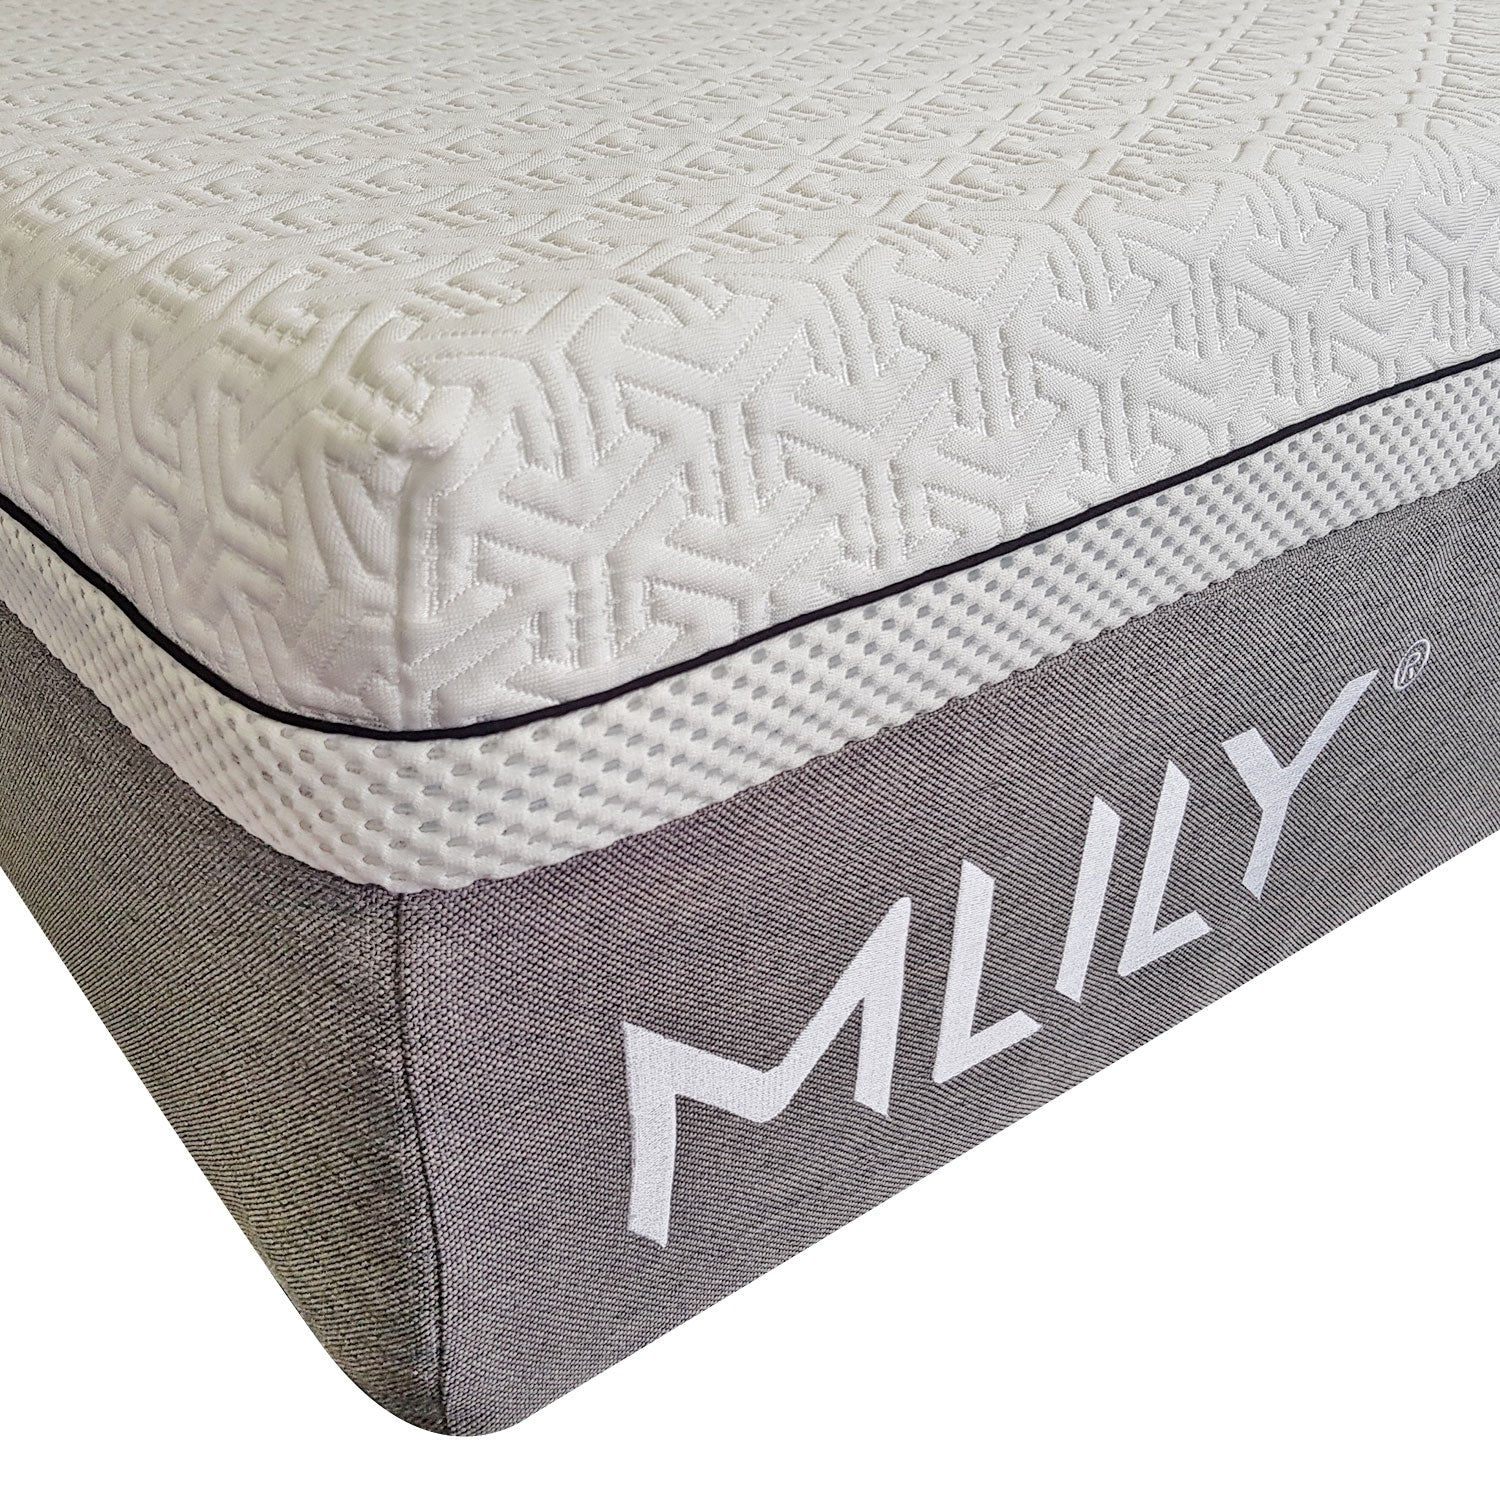 MLILY Serene Medium Memory Foam Mattress with CoolTouch